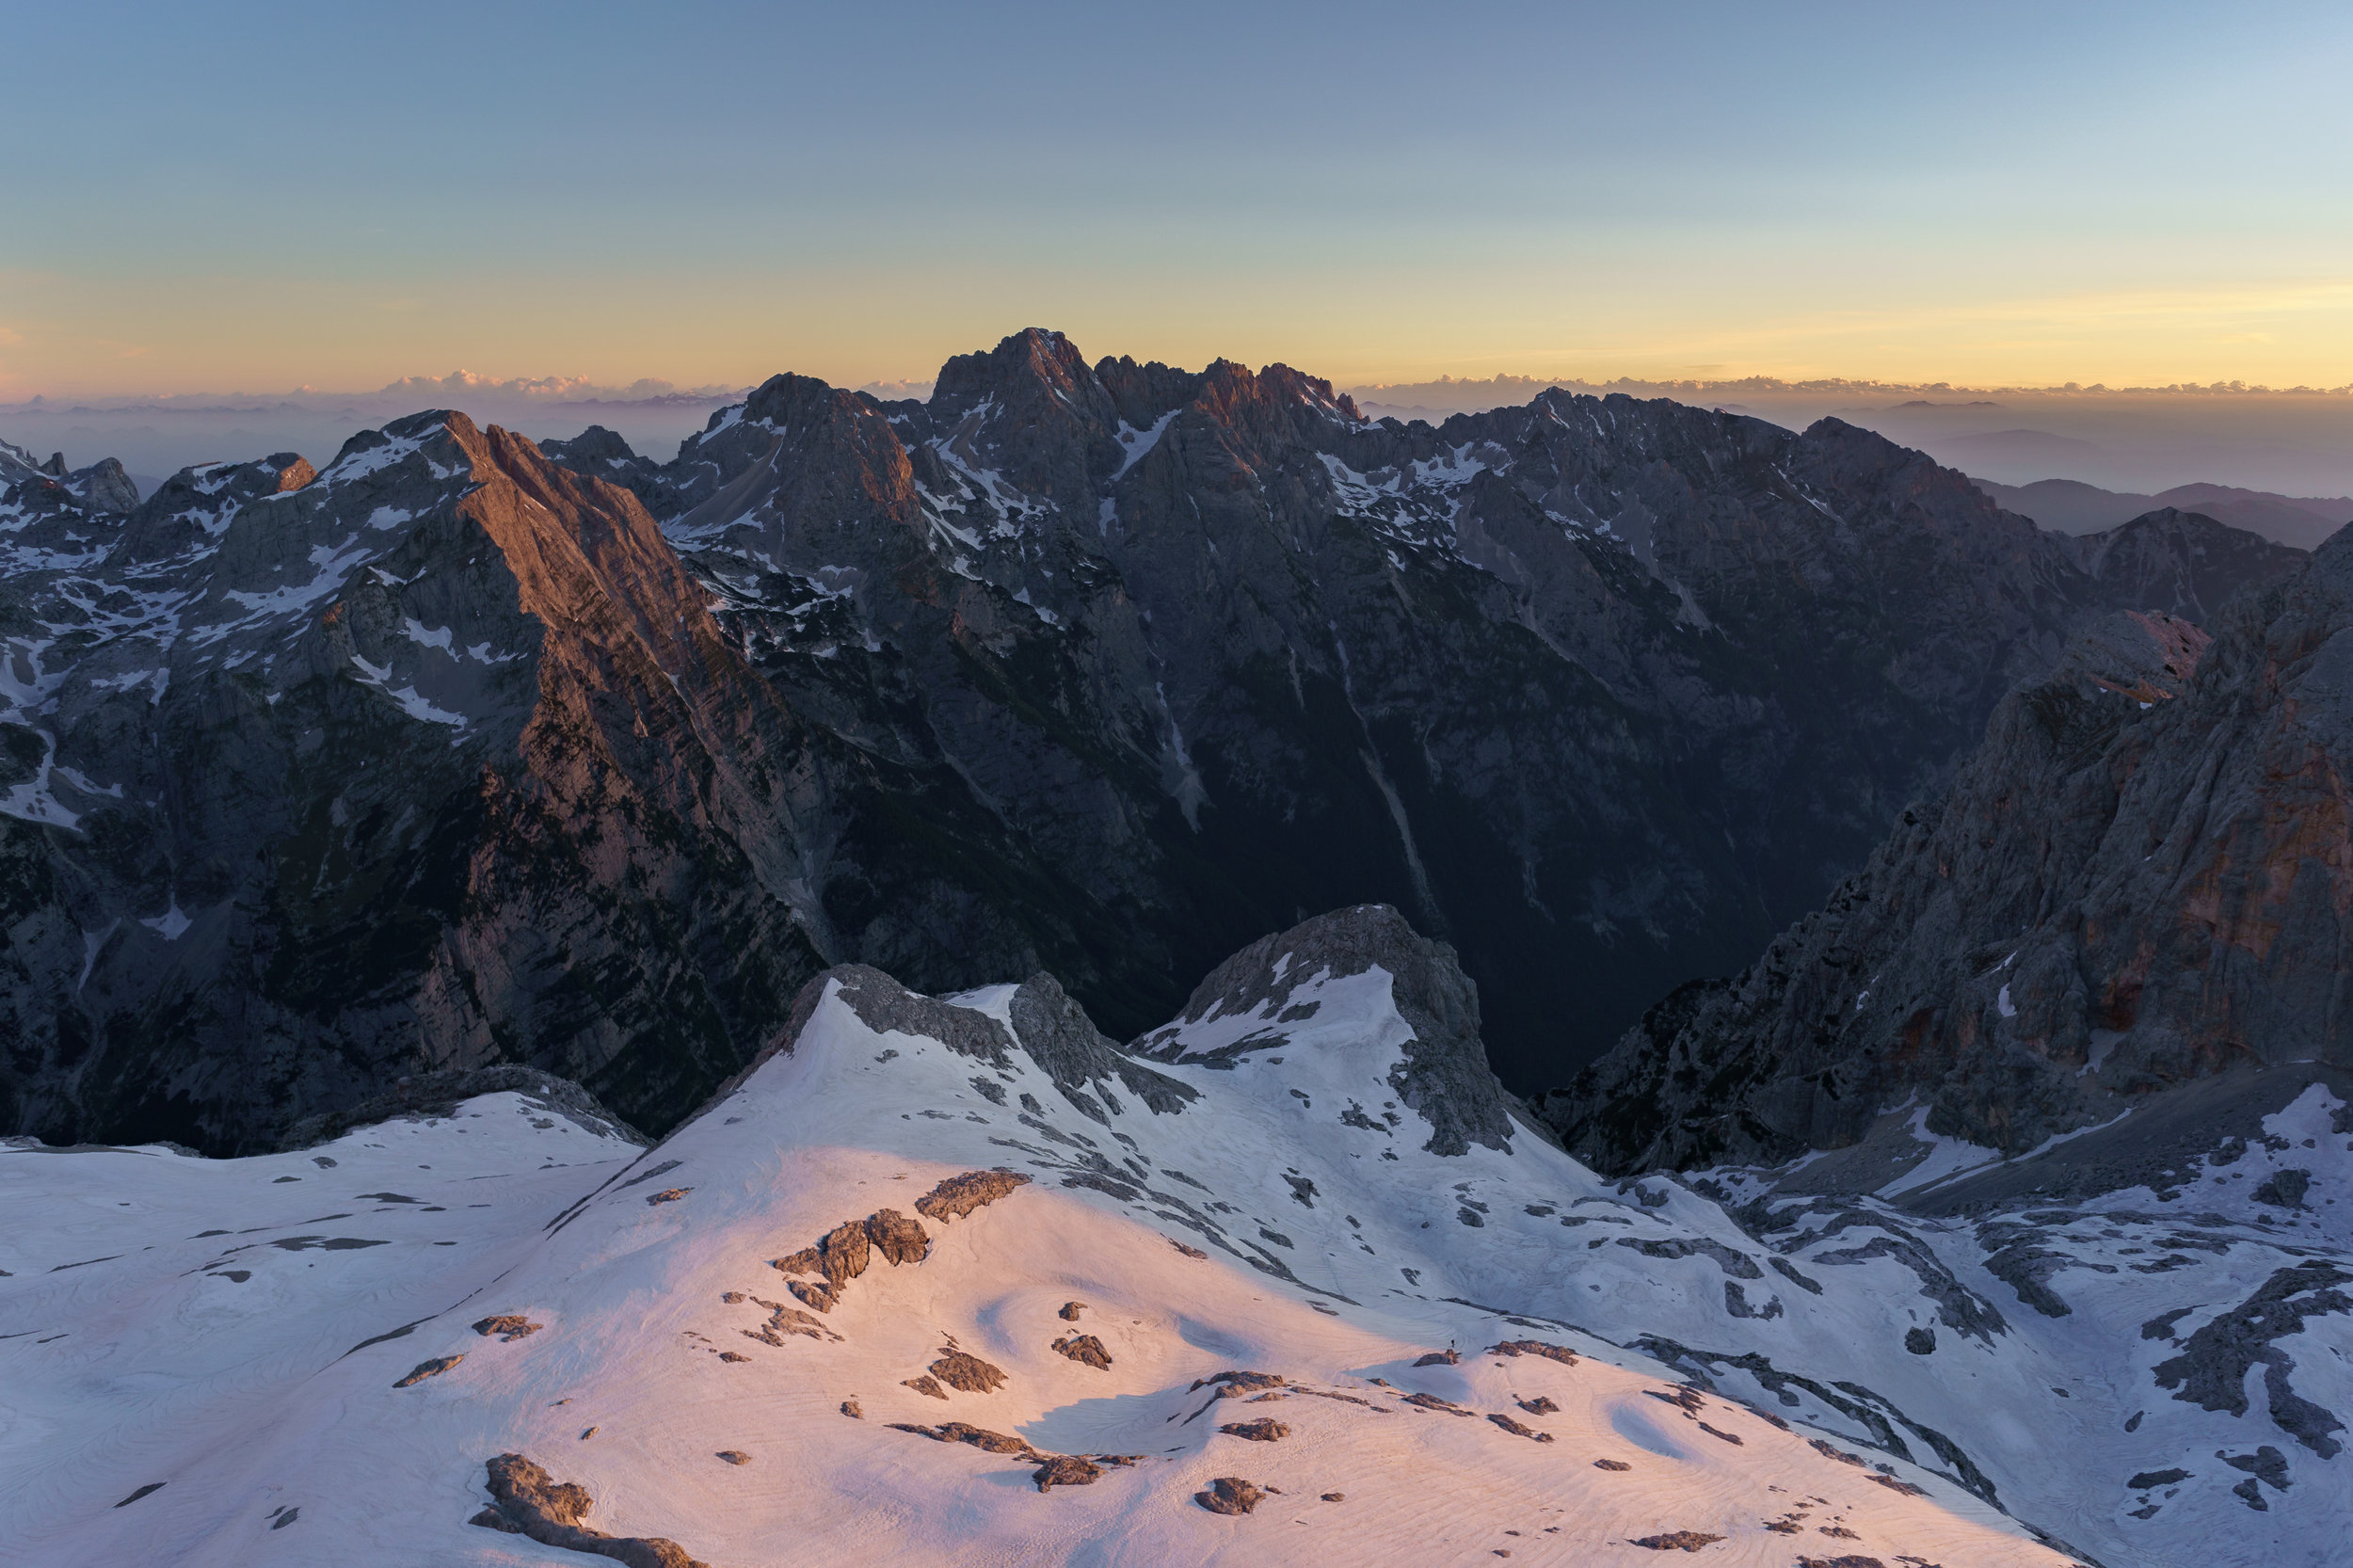 Mountains in the Mt. Škrlatica range.